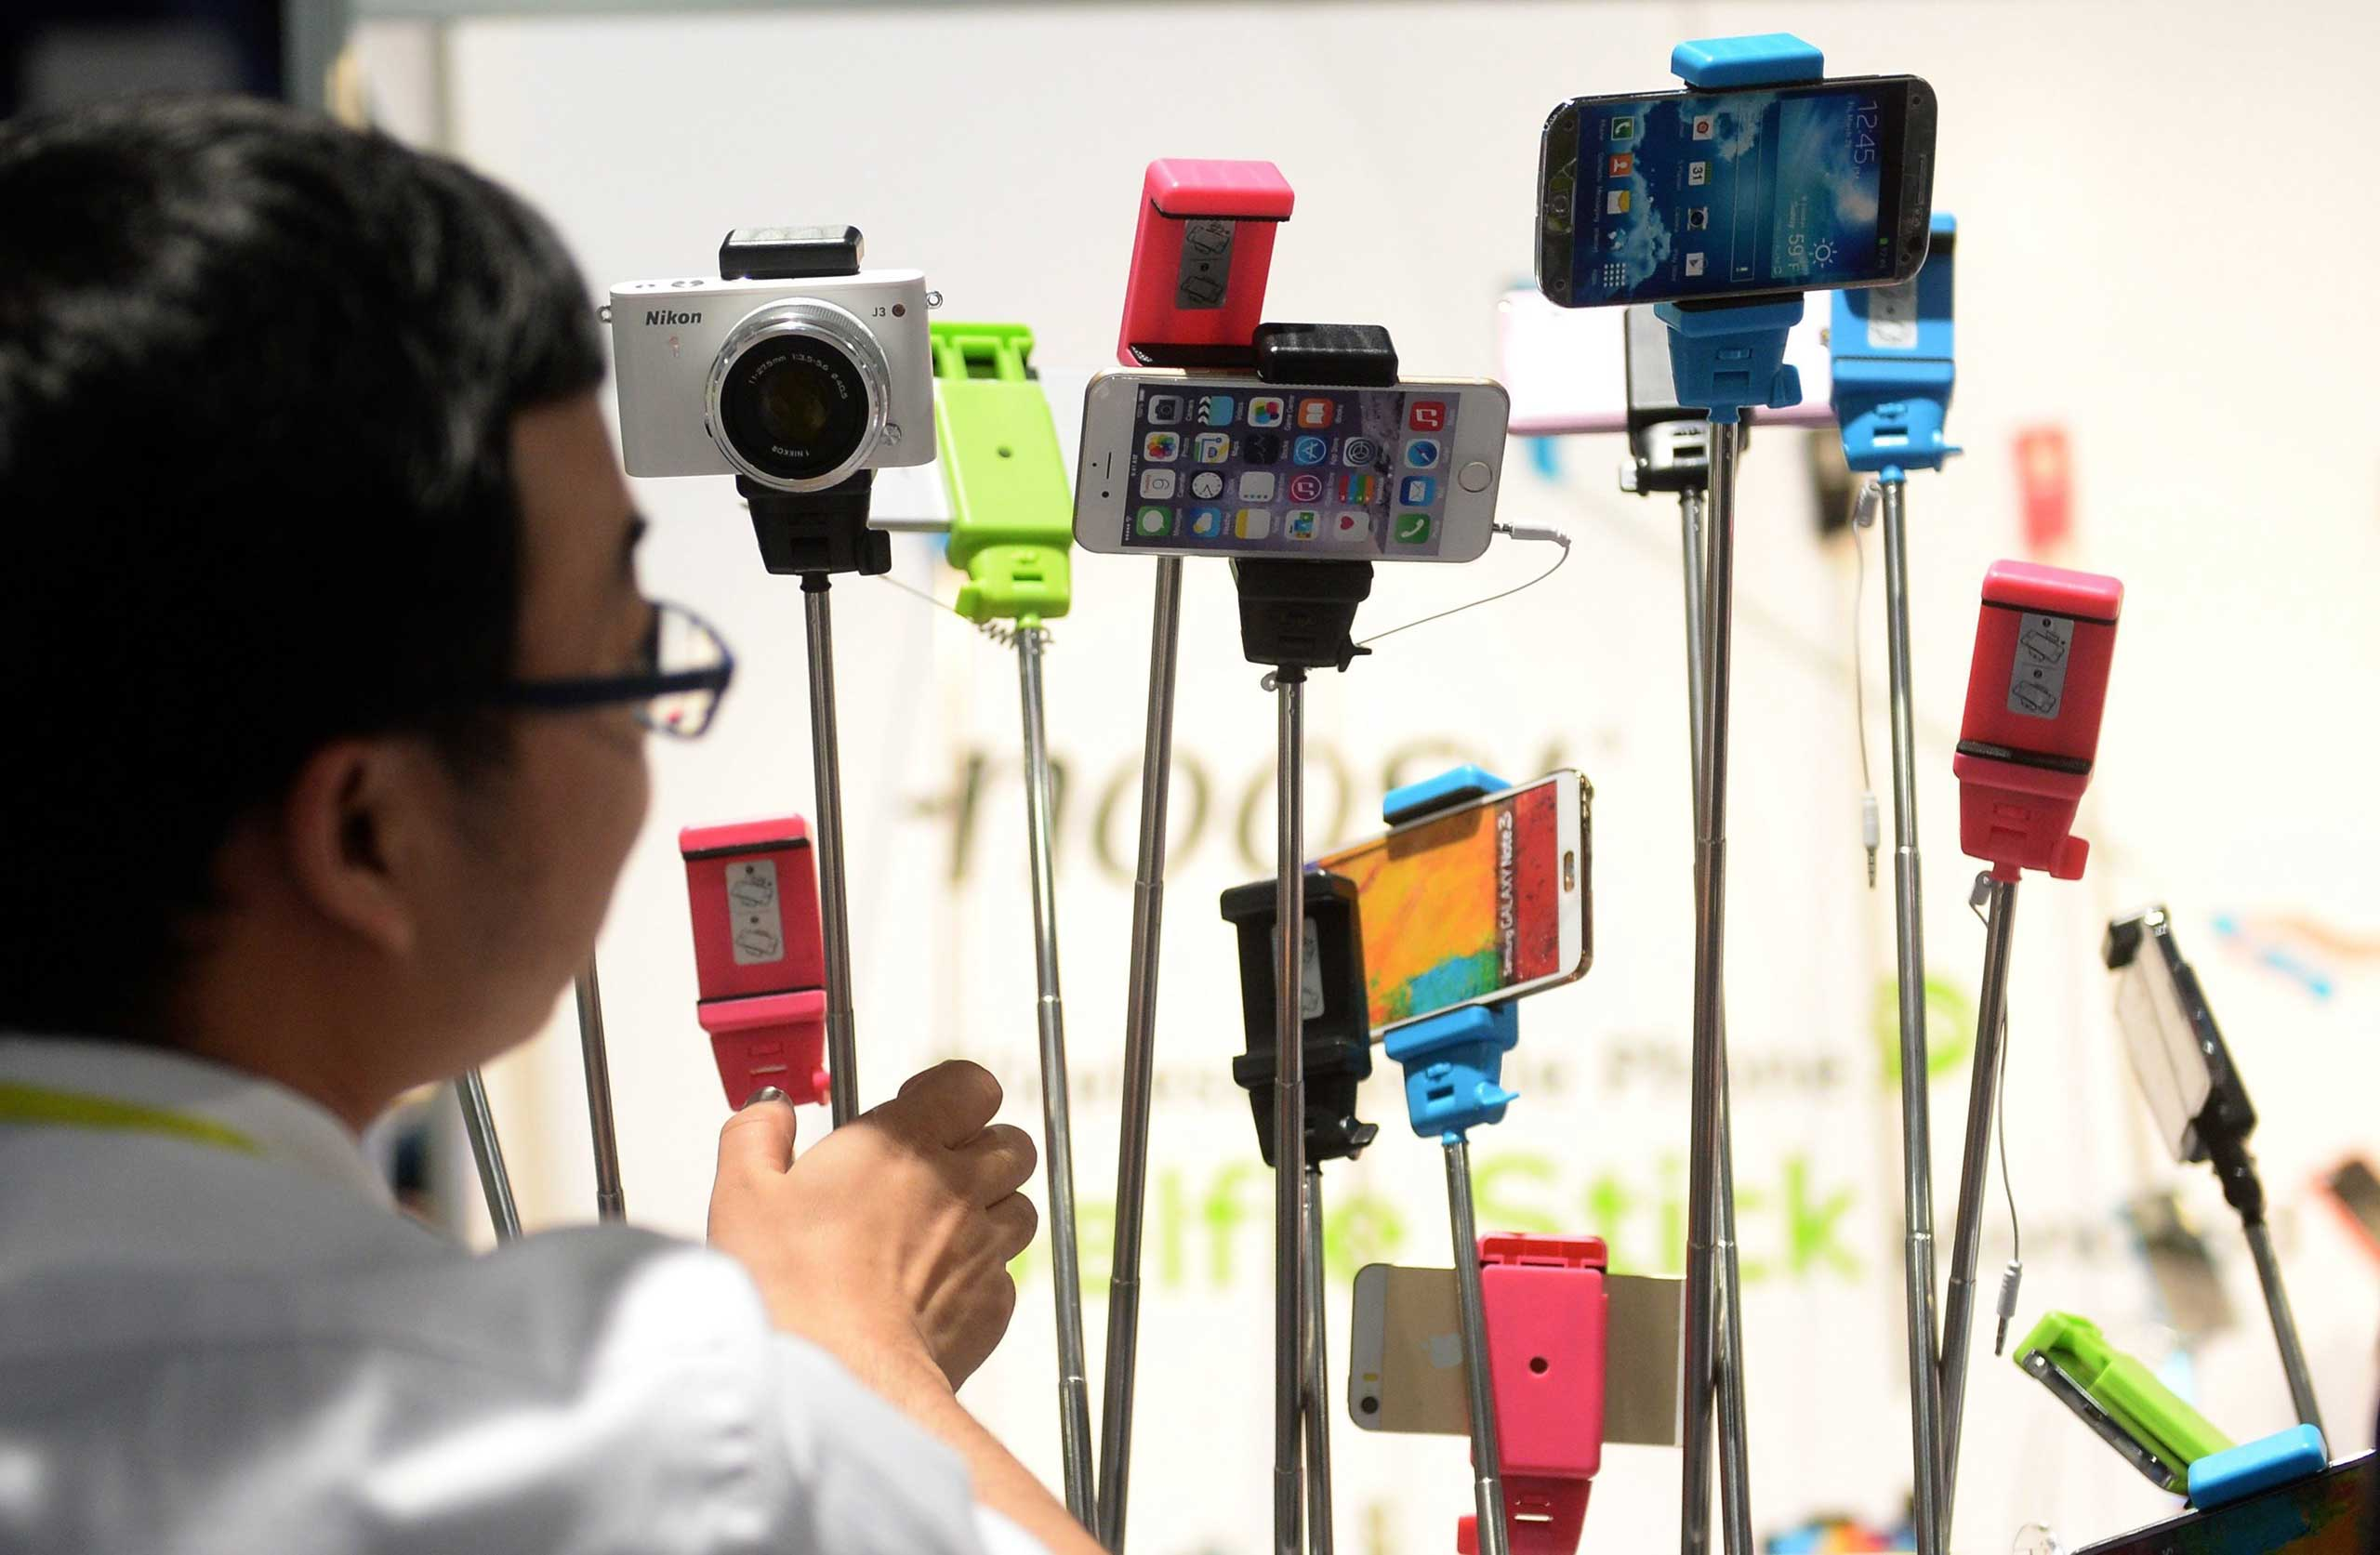 Selfie sticks of the company 'Noosy' displayed on Jan. 8, 2015.